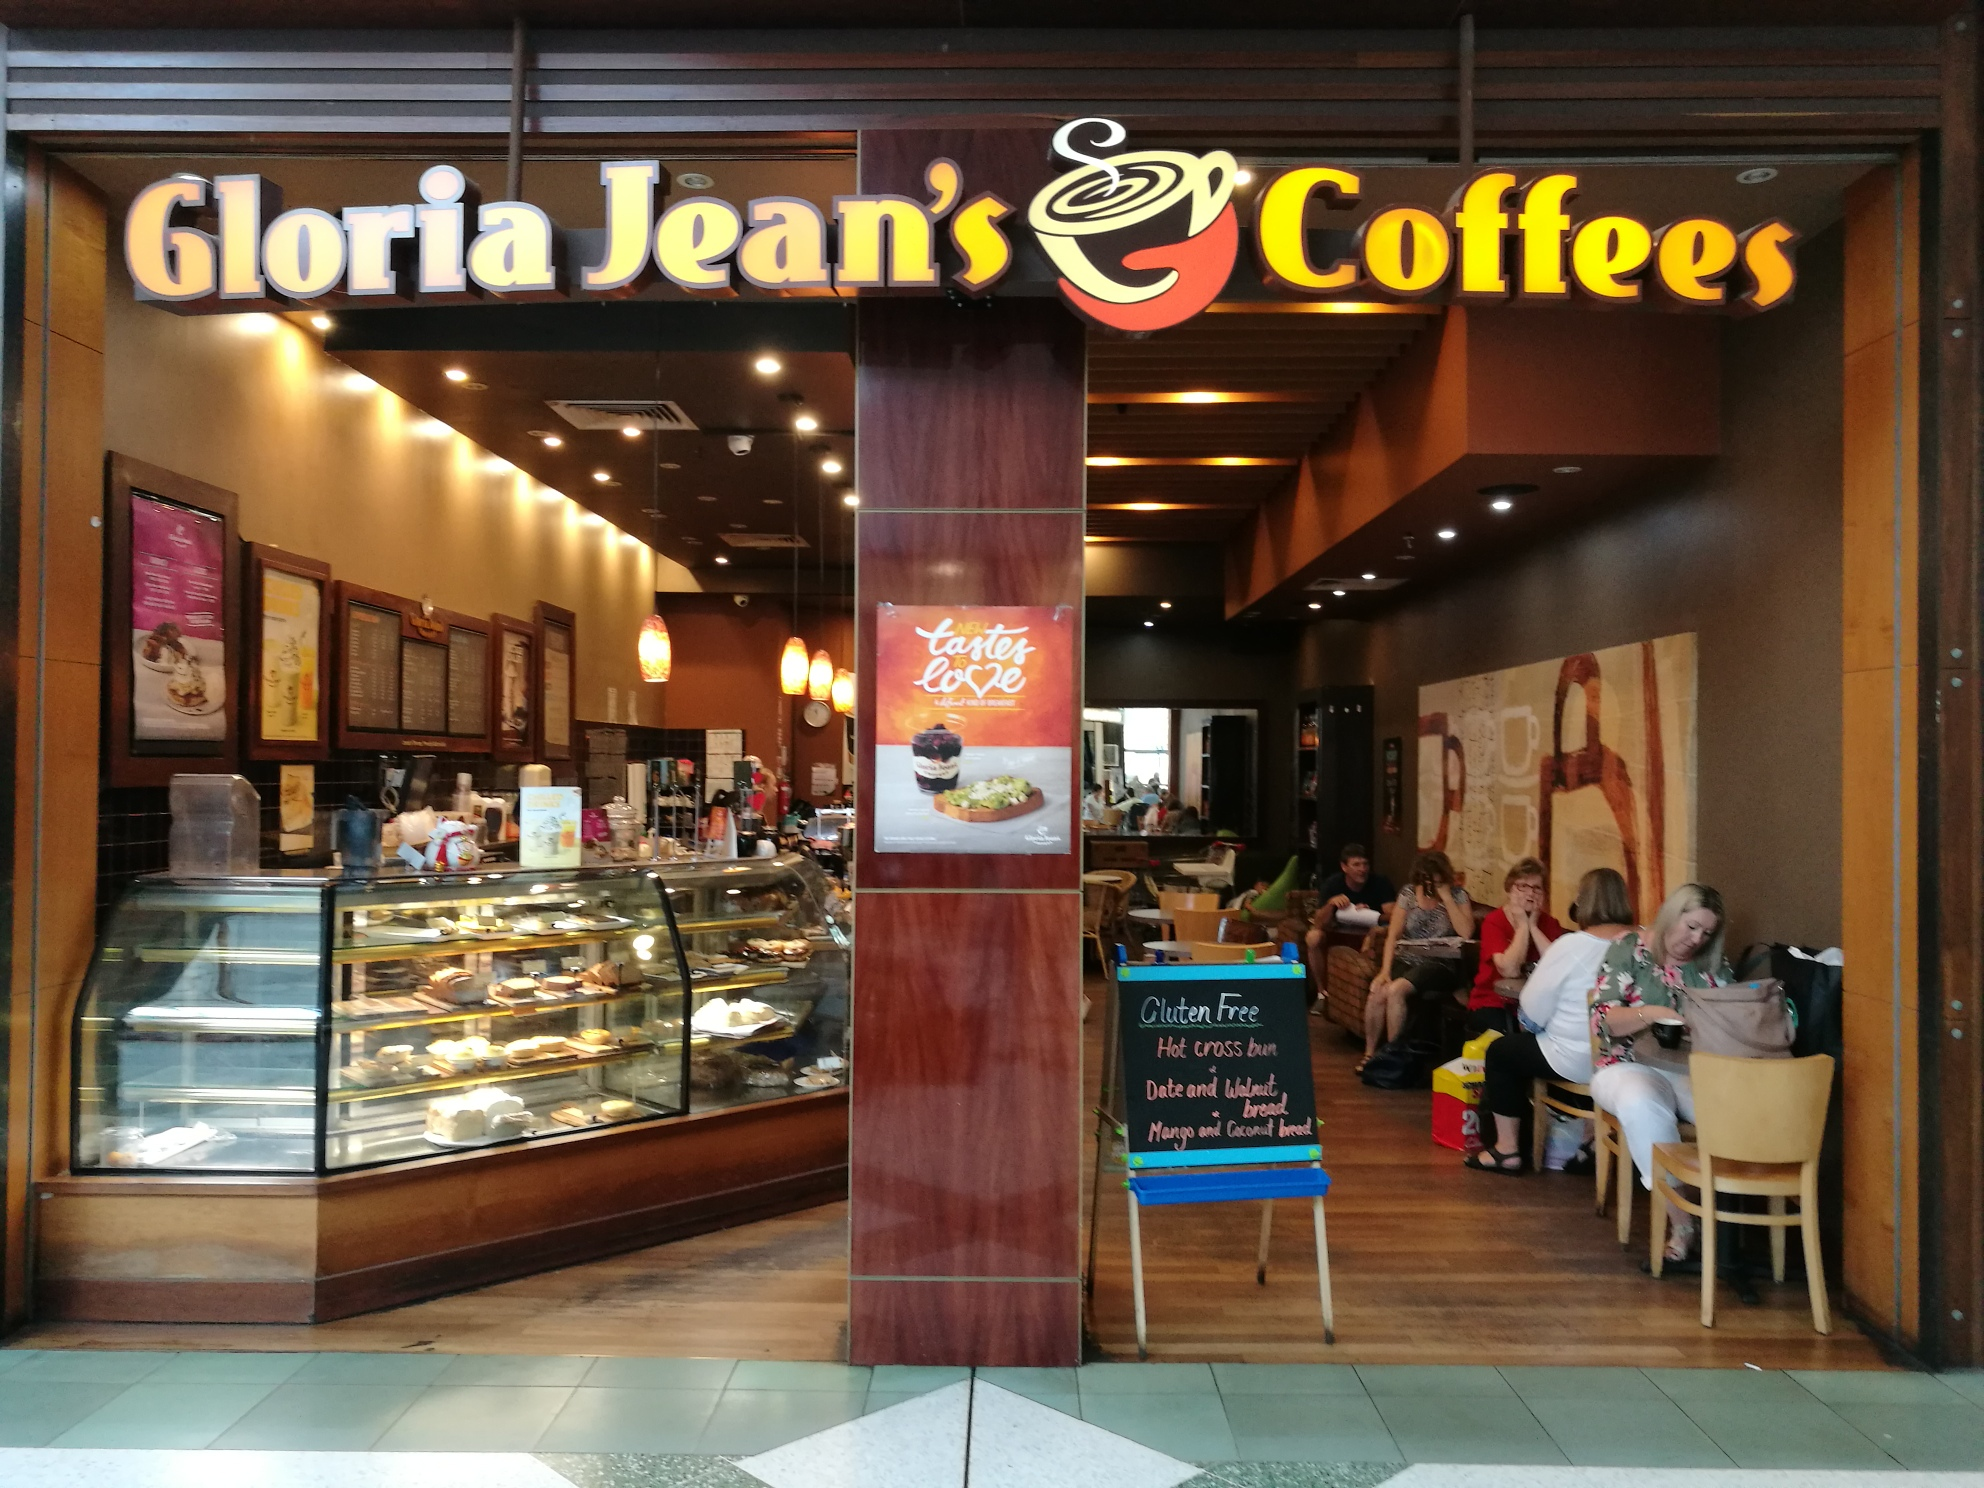 quality-coffee-food-for-customers-on-the-run-gloria-jeans-coffees-resale-0